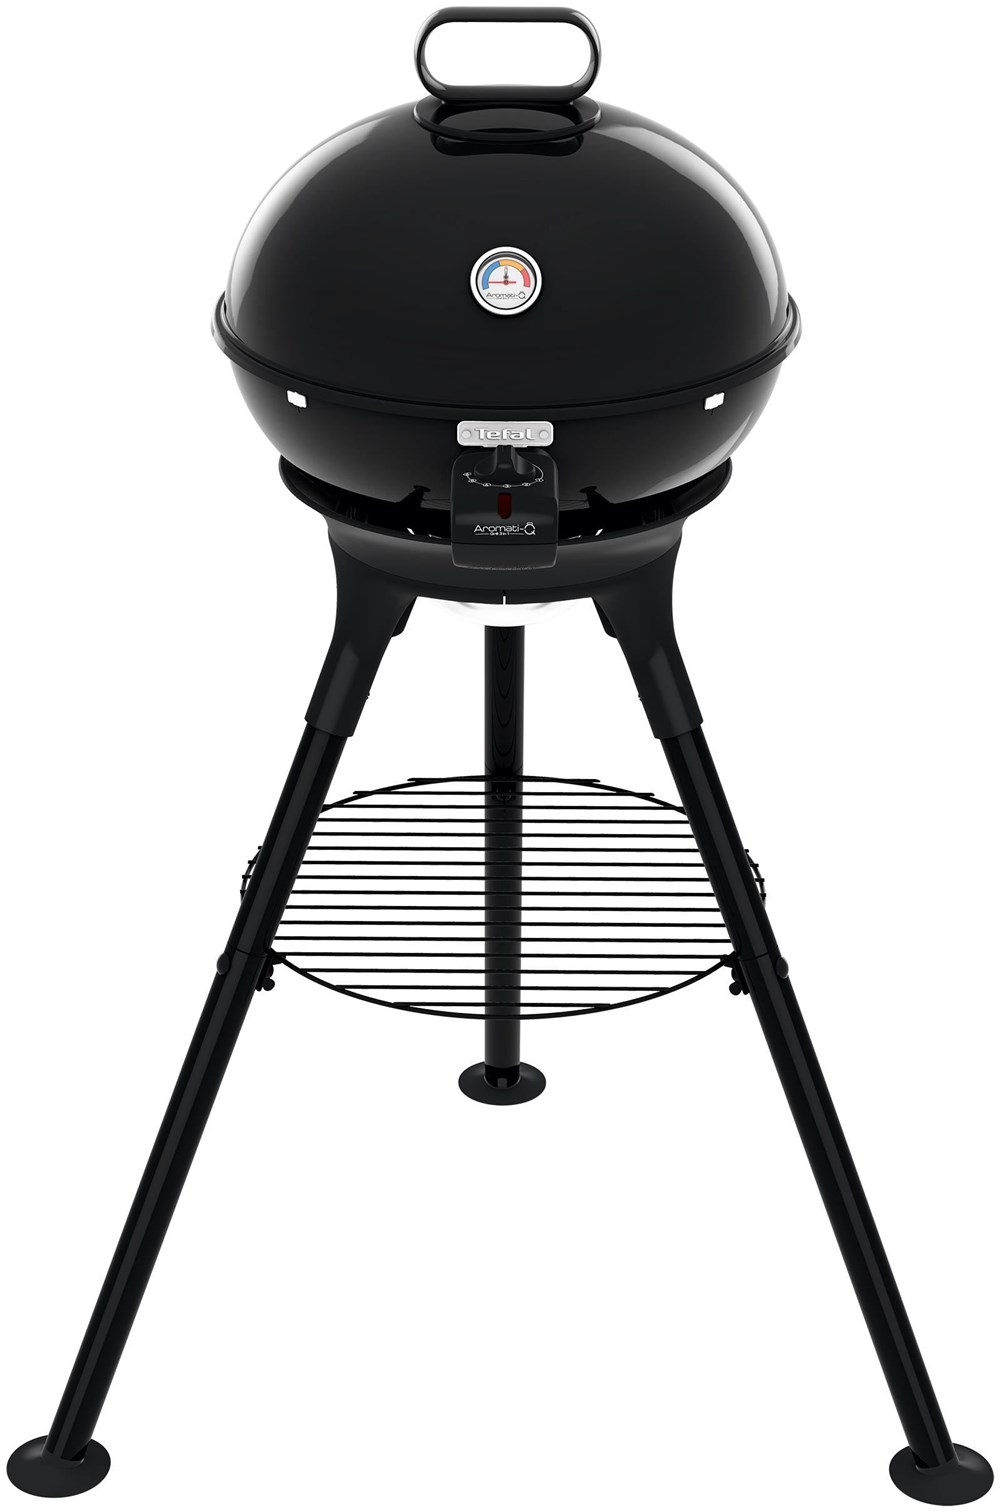 Tefal BG 9168 Barbecue-Standgrill Aromati-Q 3in1